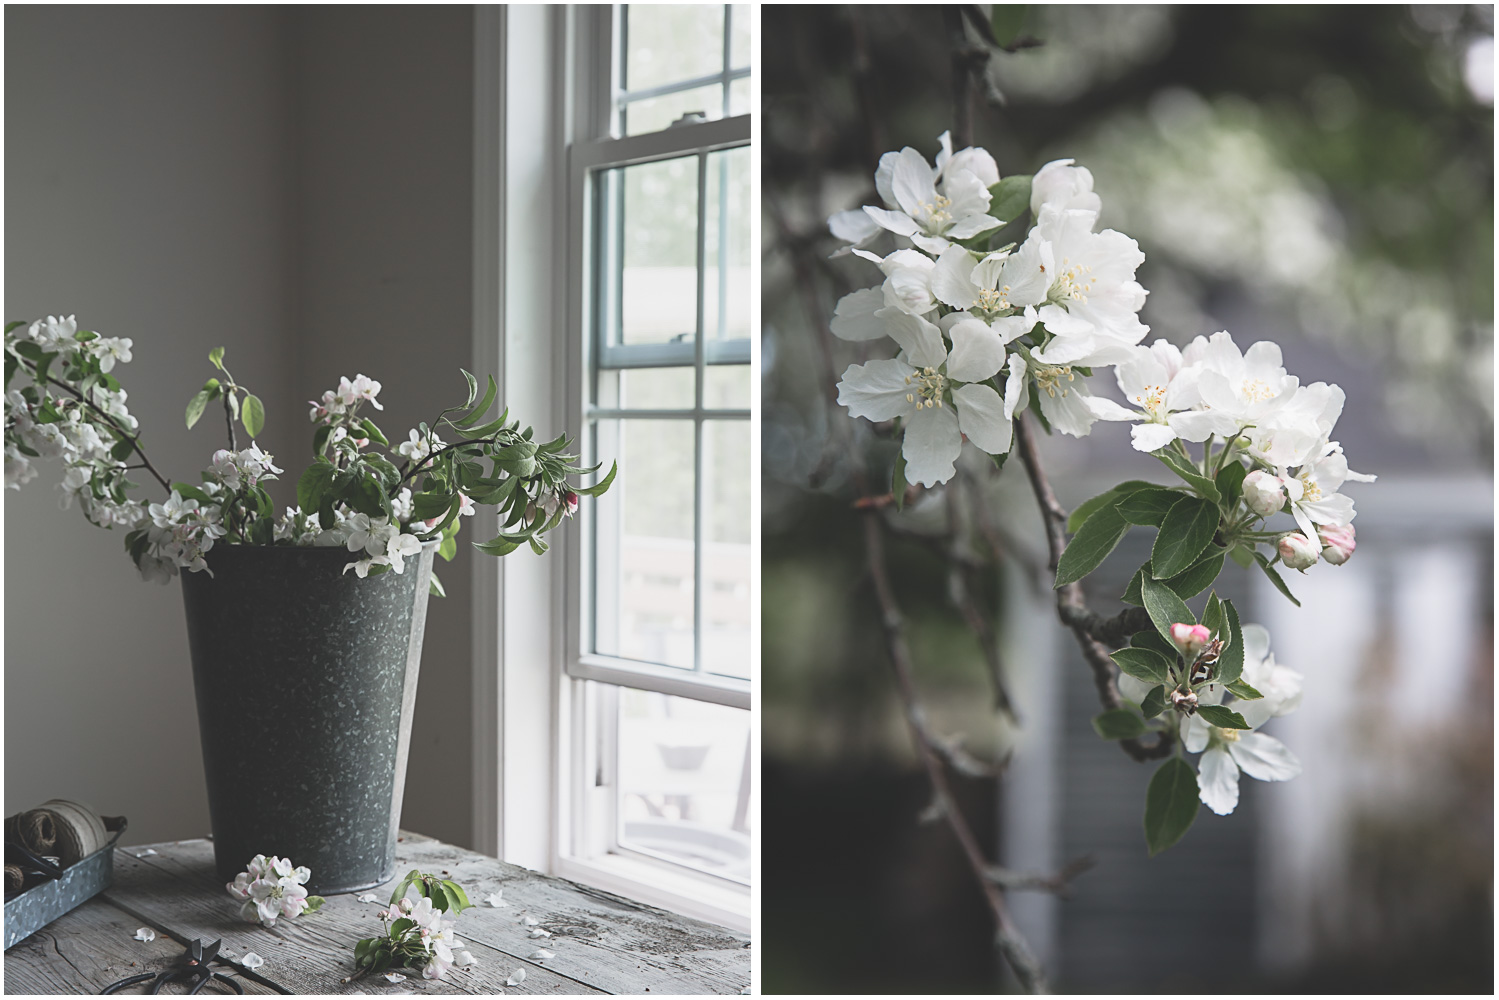 Apple blossoms on a spring day